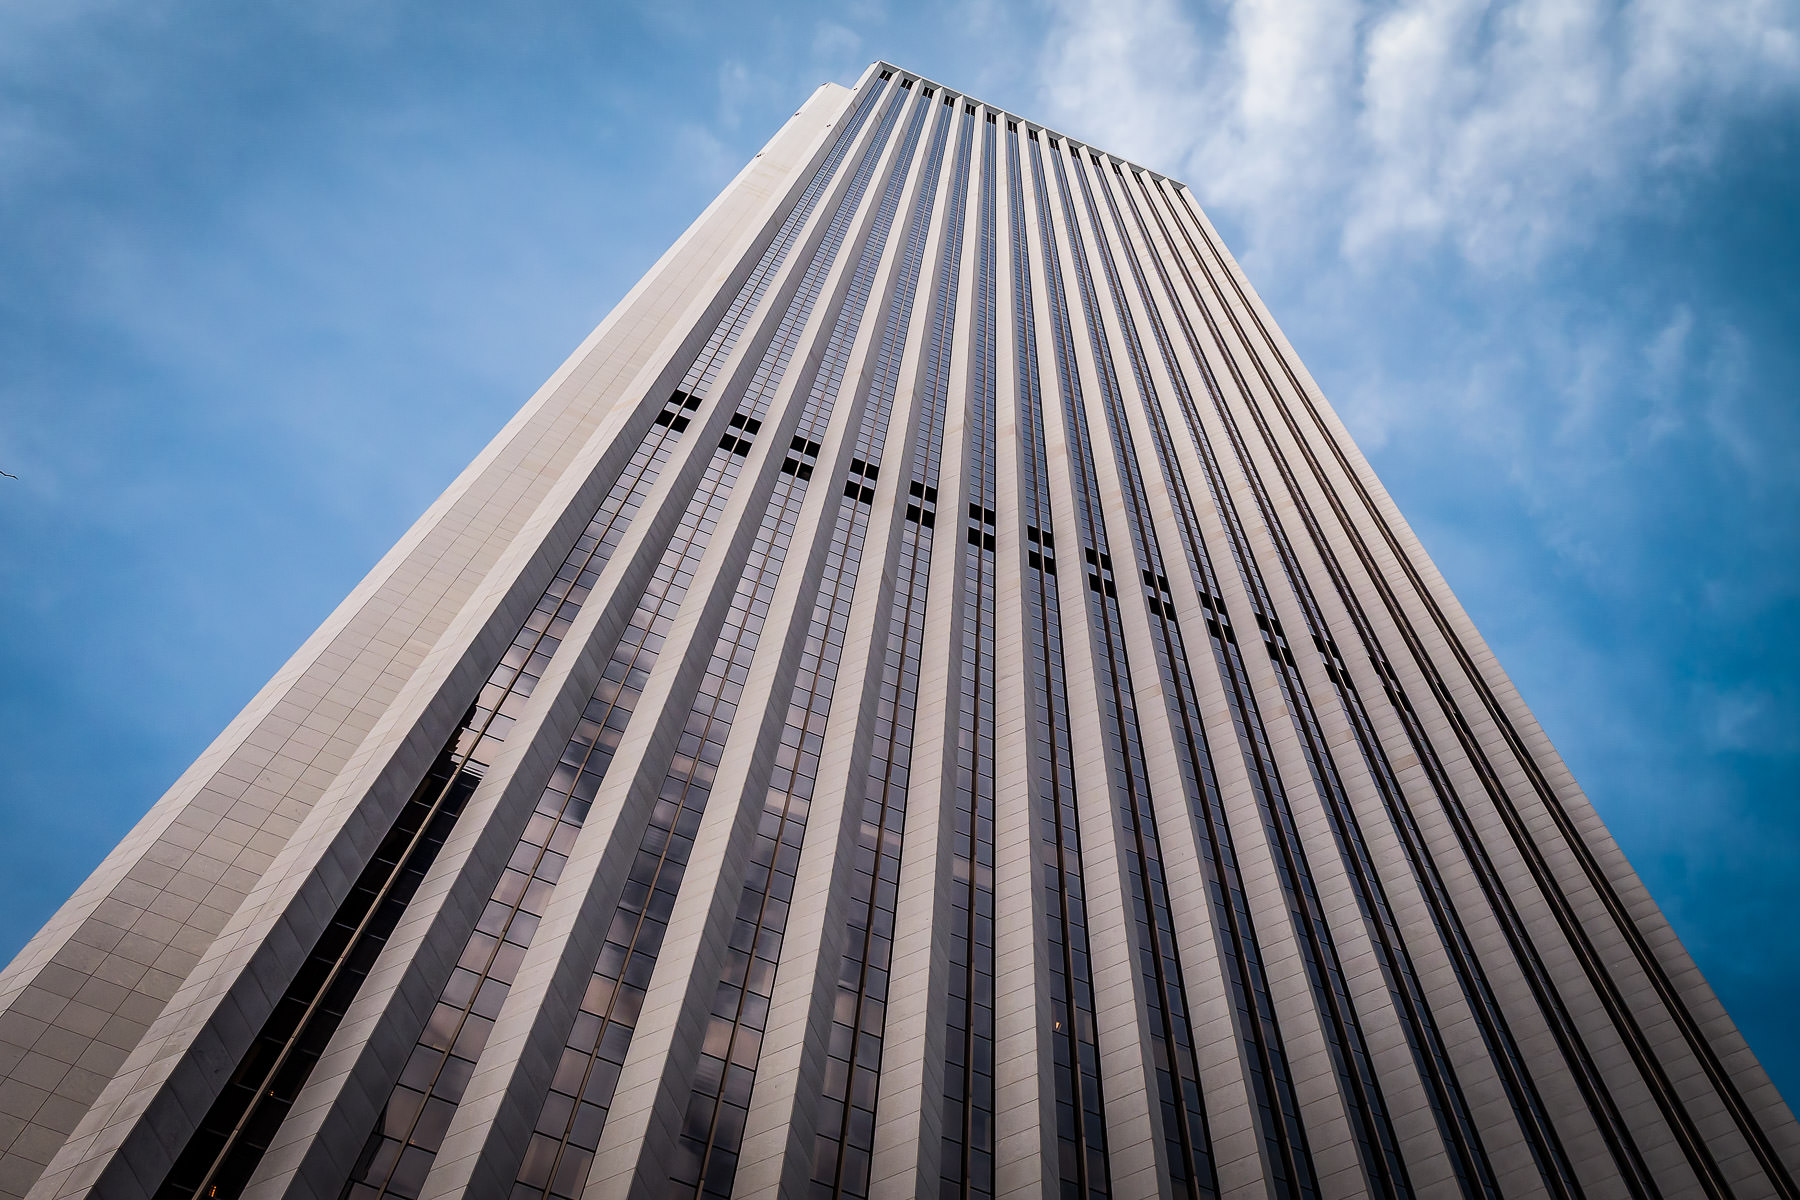 The 346-meter-tall (1,136 feet) Aon Center reaches into the sky over Chicago.